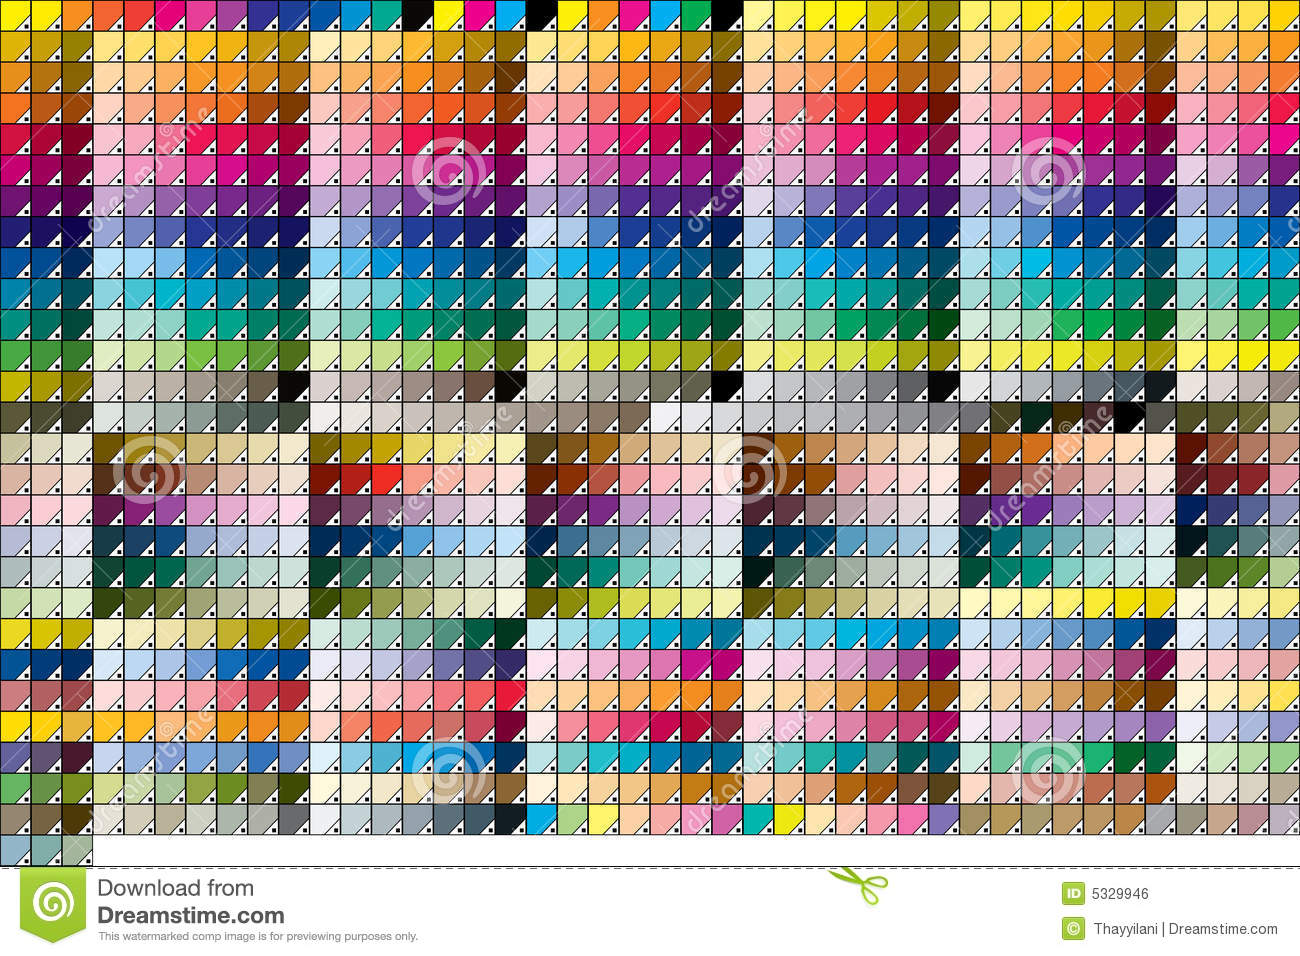 abbastanza Pantone Solid Coated stock vector. Image of colour, colorful - 5329946 ER78